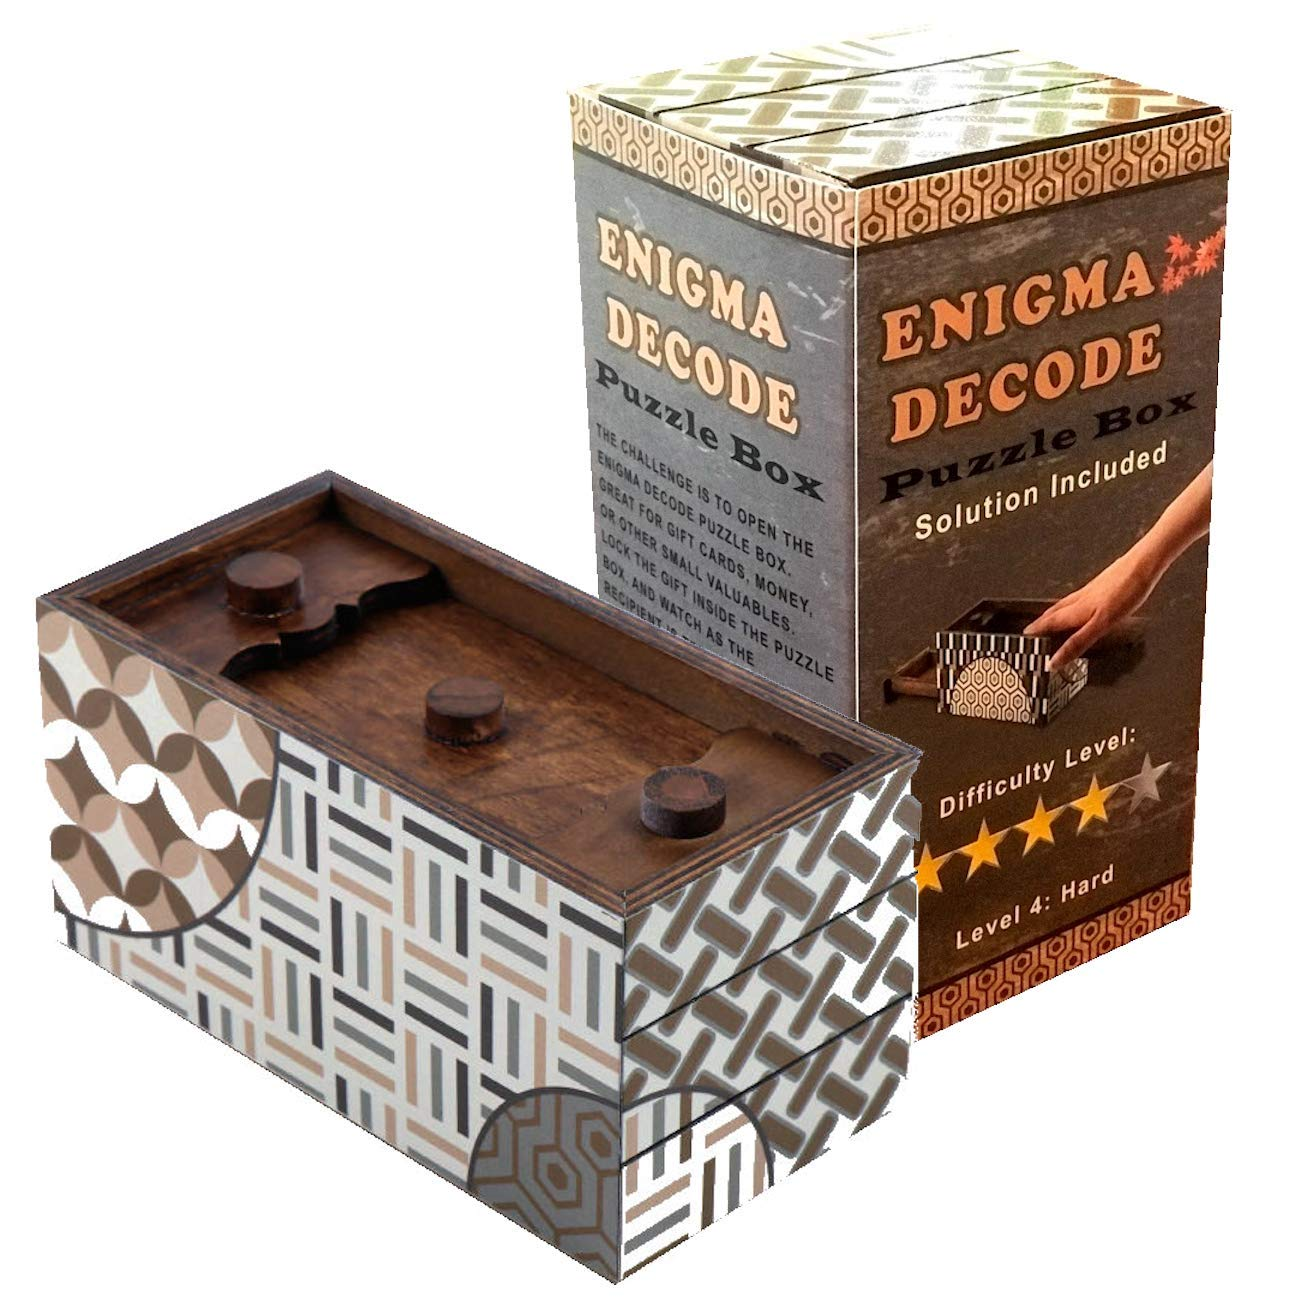 Enigma Decode Secret Puzzle Box - Money and Gift Card Holder in a Wood Magic Trick Lock with Two Hidden Compartments Brainteaser Toy by Winshare Puzzles and Games